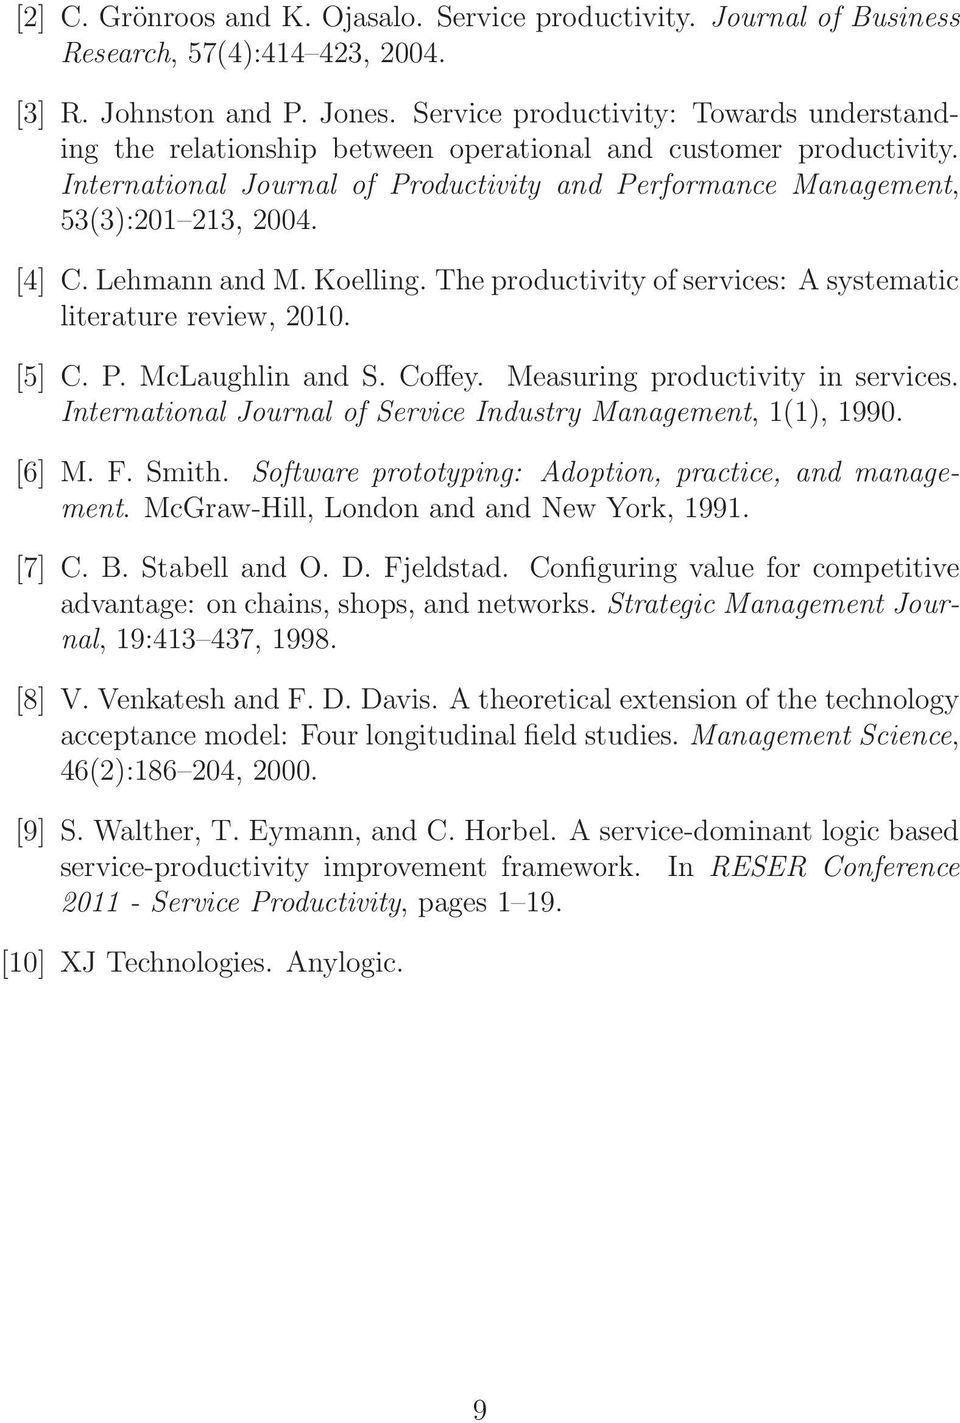 [4] C. Lehmann and M. Koelling. The productivity of services: A systematic literature review, 2010. [5] C. P. McLaughlin and S. Coffey. Measuring productivity in services.